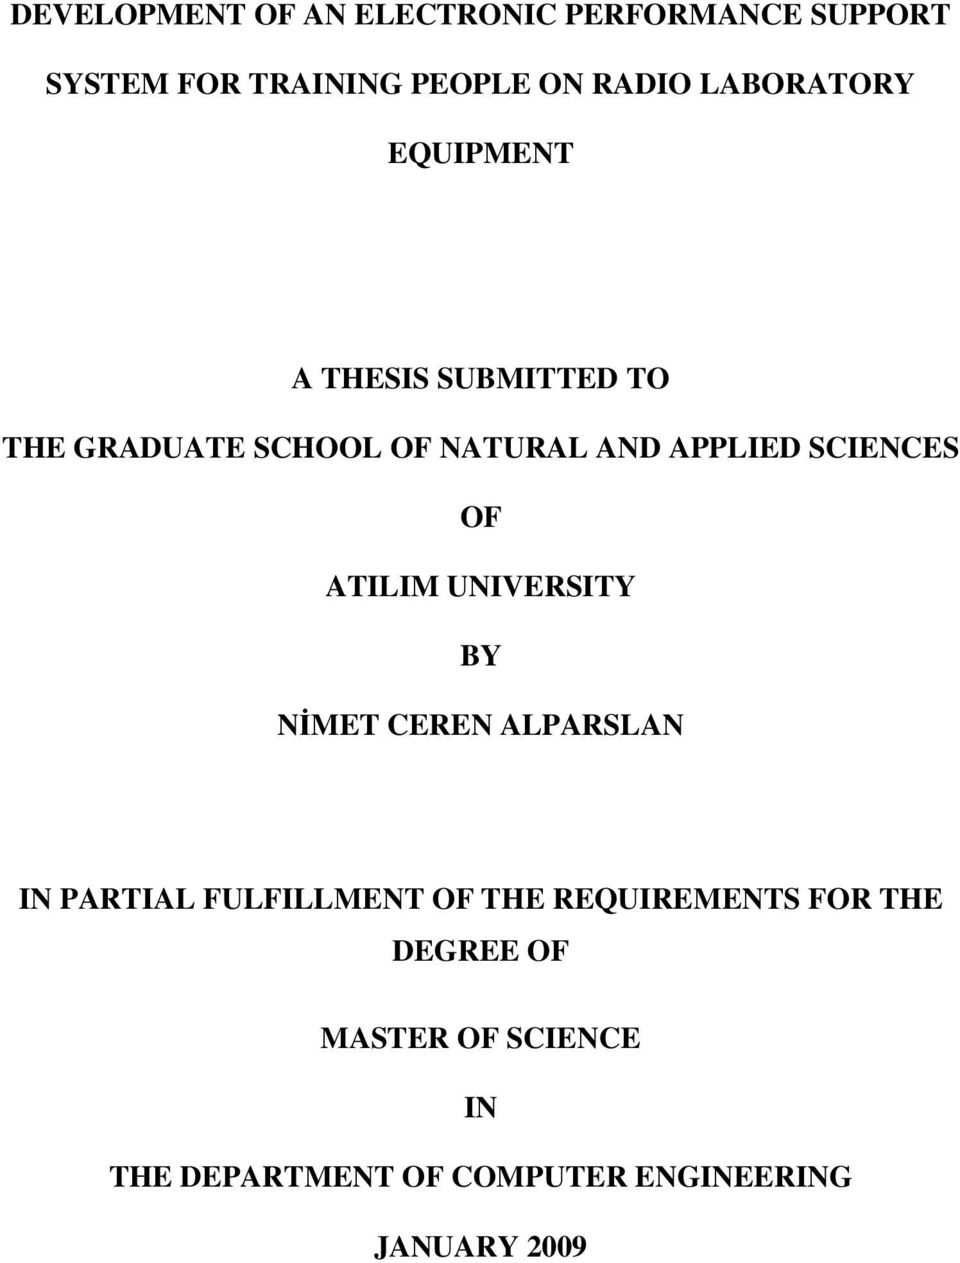 SCIENCES OF ATILIM UNIVERSITY BY NİMET CEREN ALPARSLAN IN PARTIAL FULFILLMENT OF THE